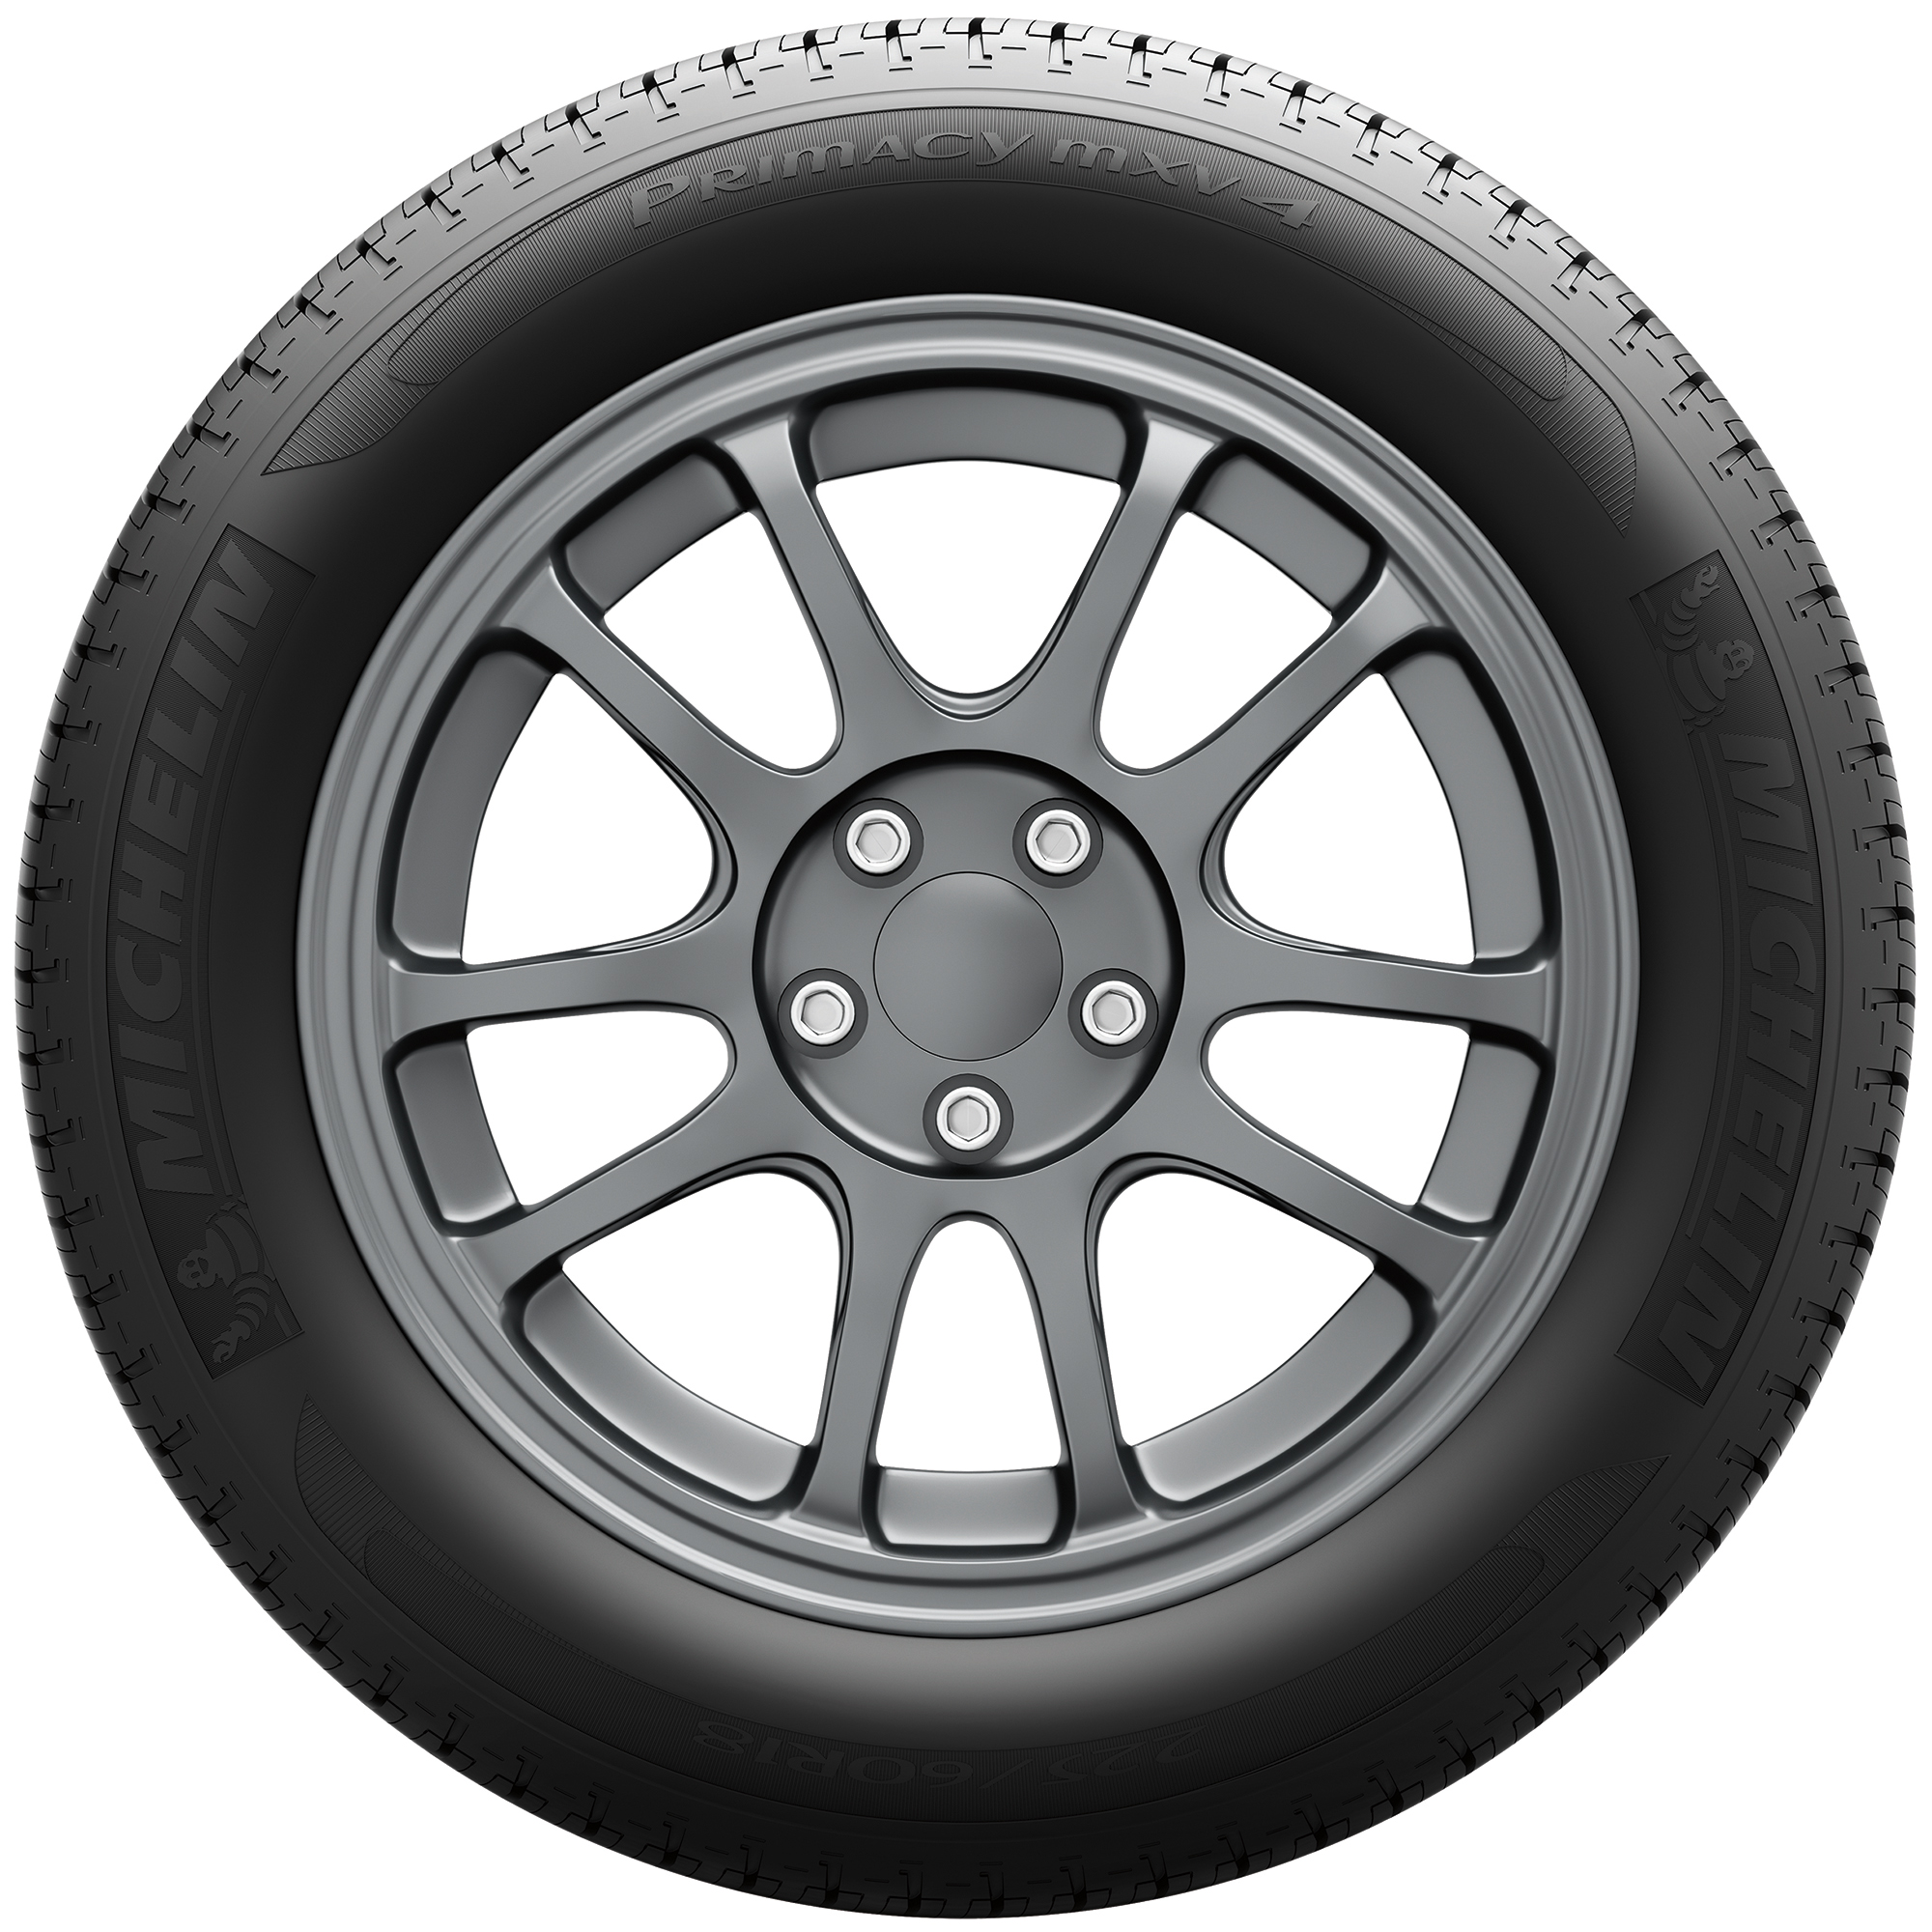 Michelin Primacy MXV4 All-Season Highway Tire P215/55R17 93V